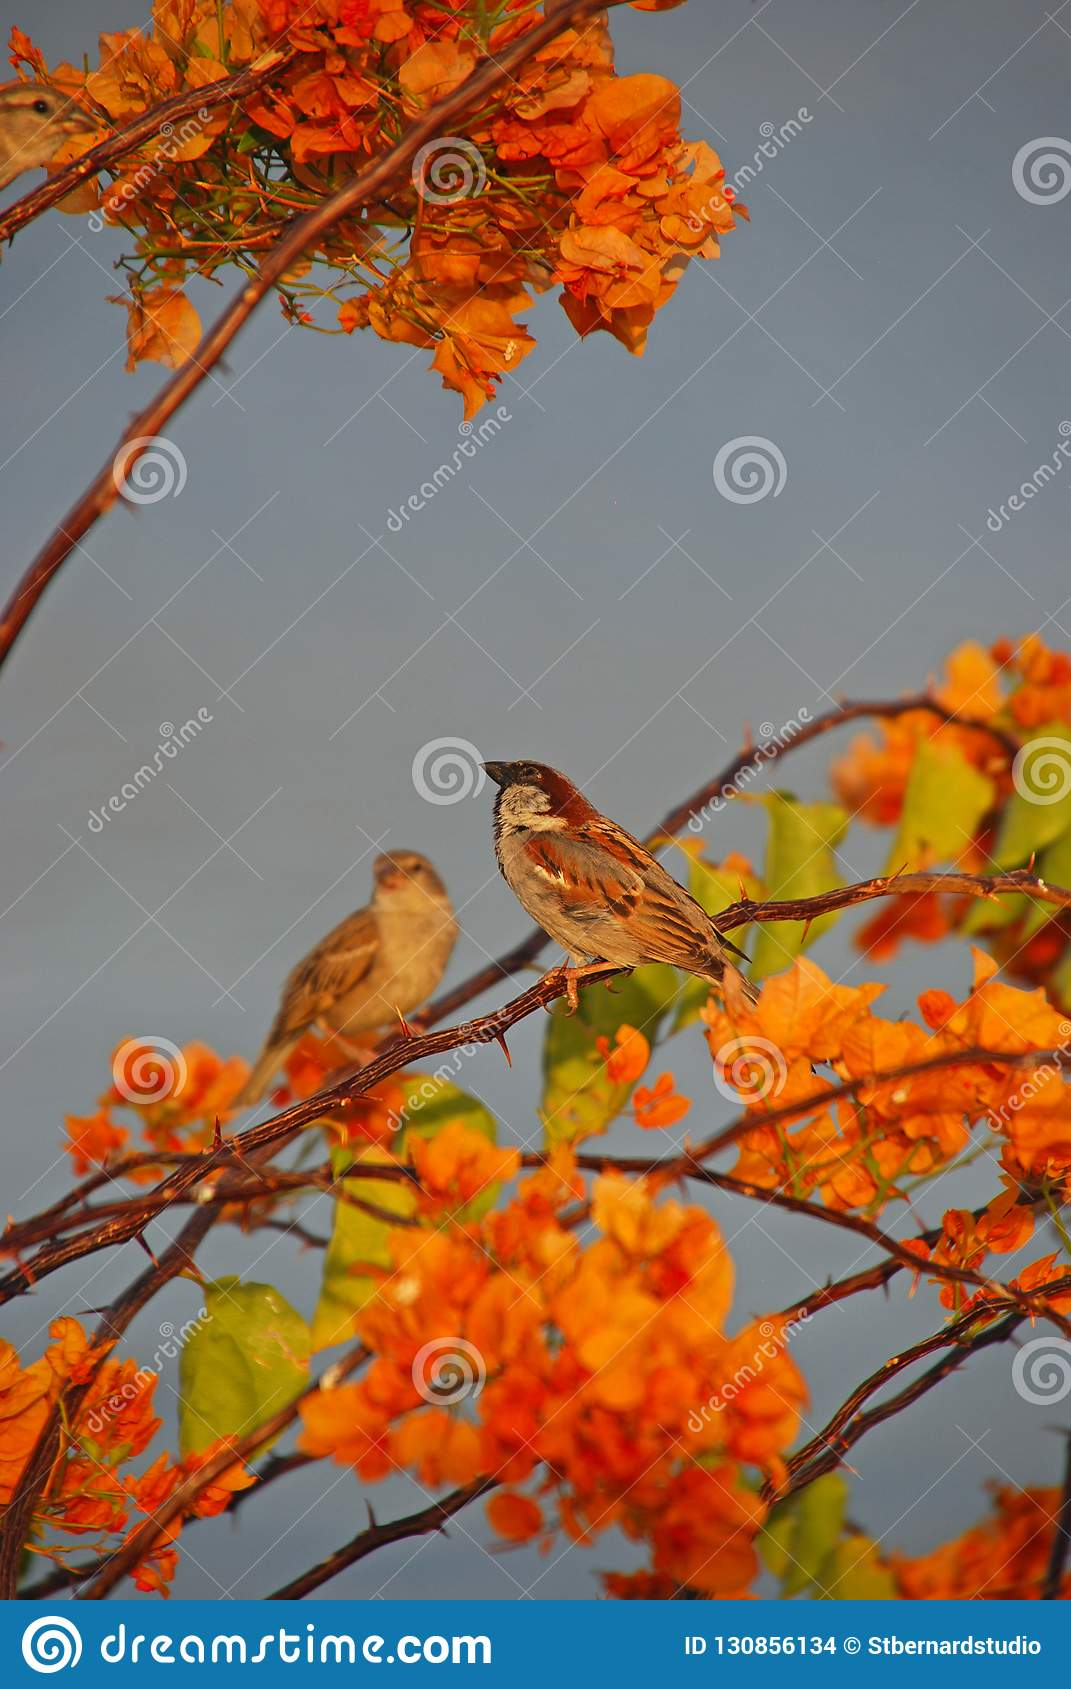 A pair of light brown sparrows resting on the twigs of a large Bougainvillea tree